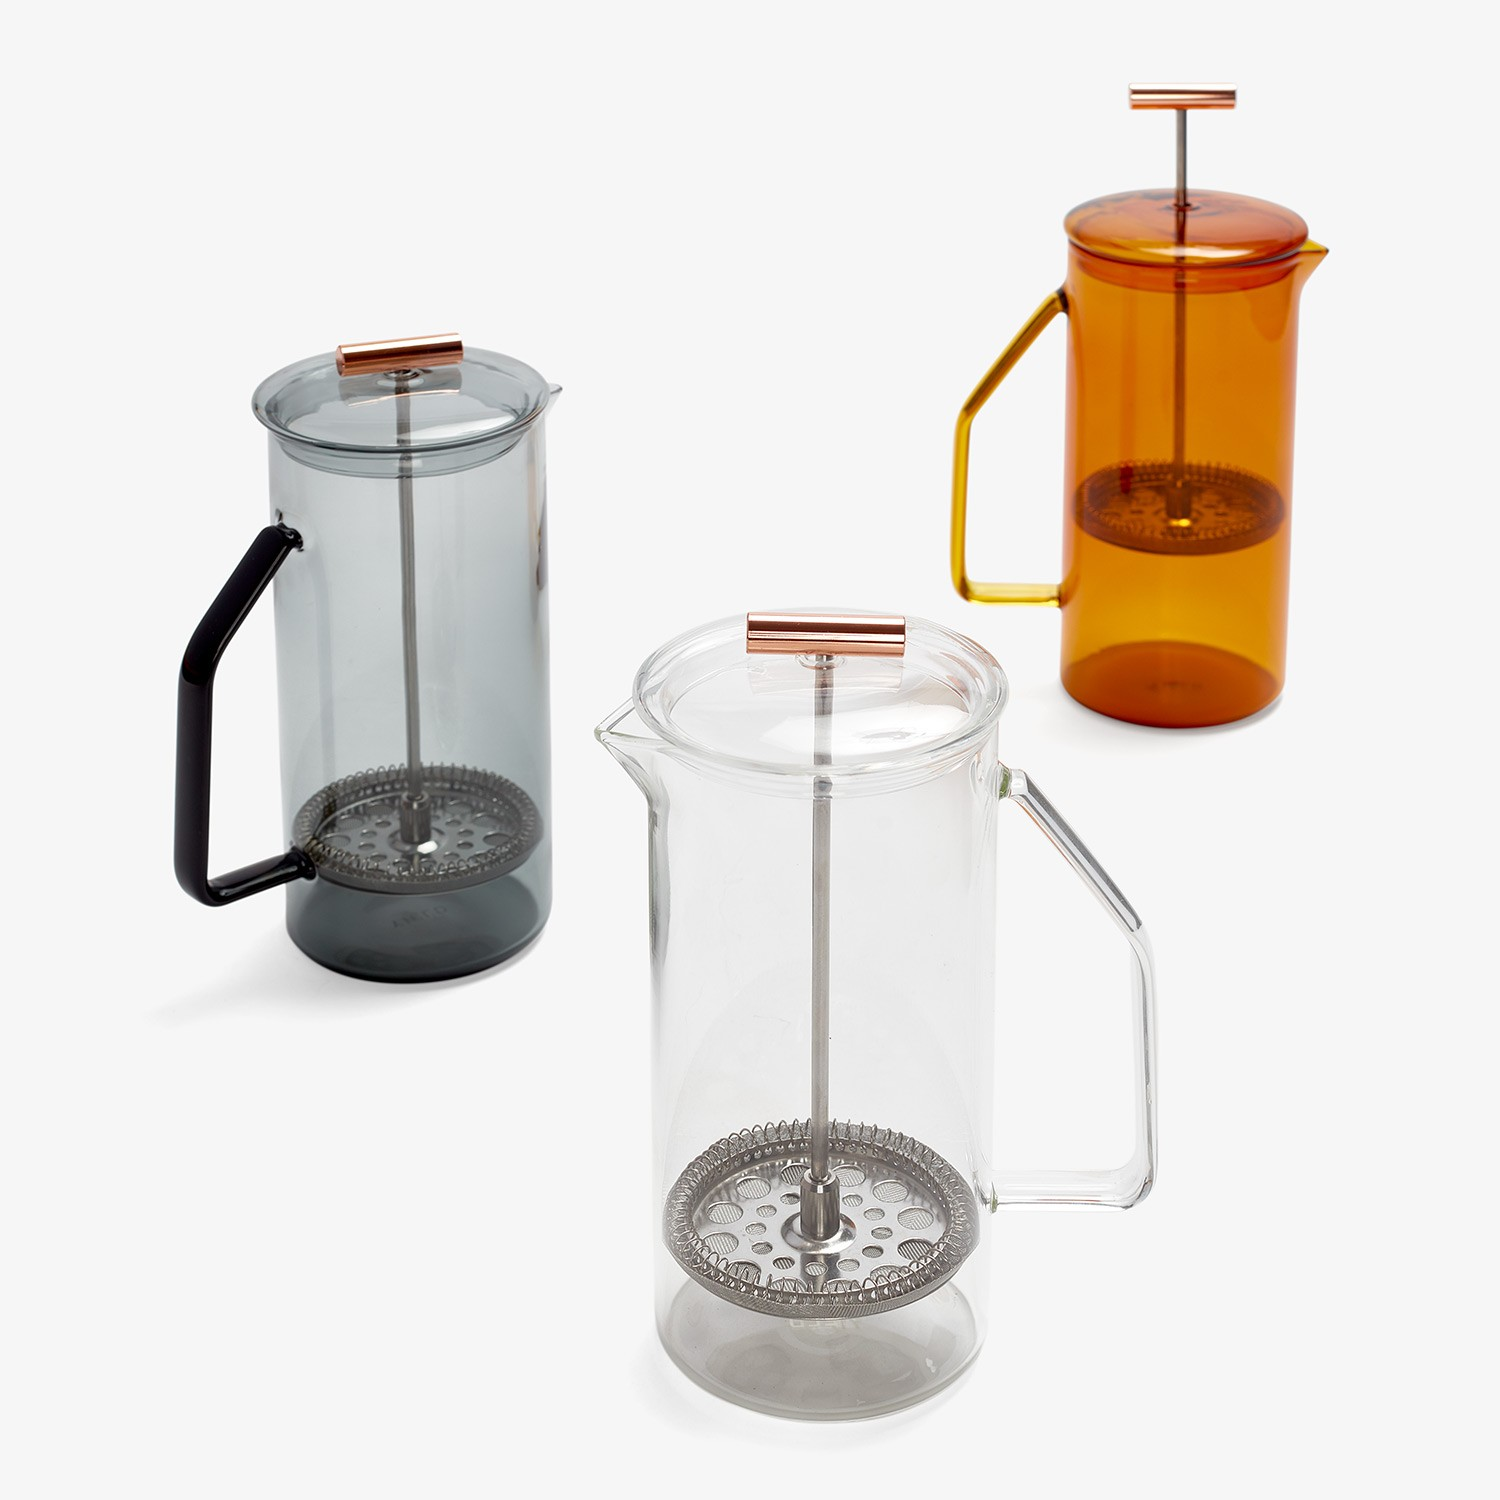 beautiful-coffee-makers-glass-BLOG0119.jpg